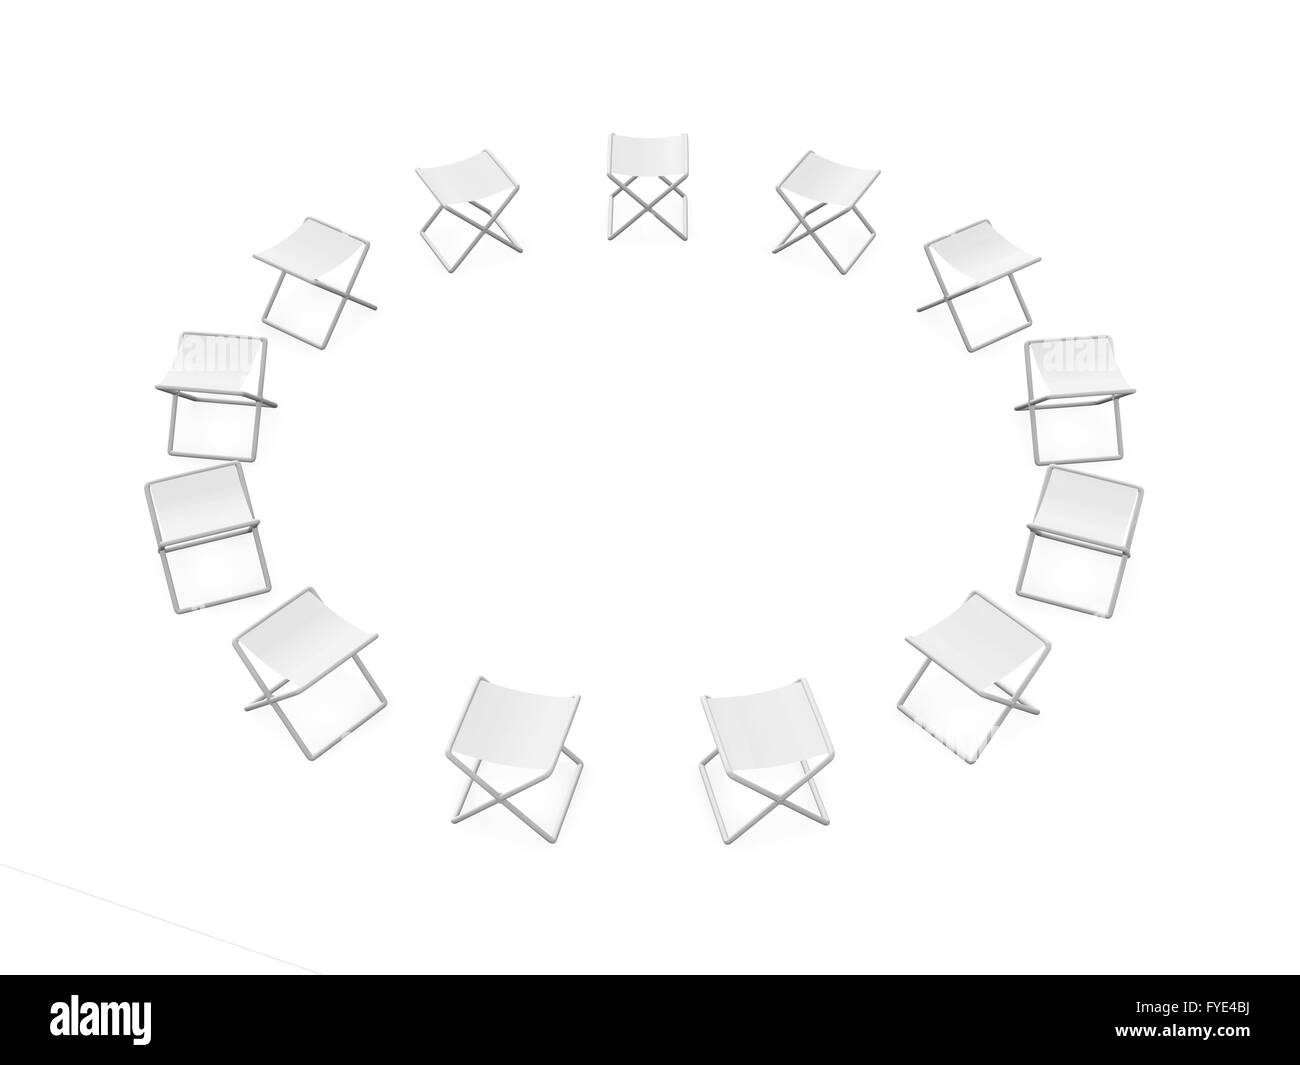 folding circle chairs desk chair costco of stock photo 102958342 alamy